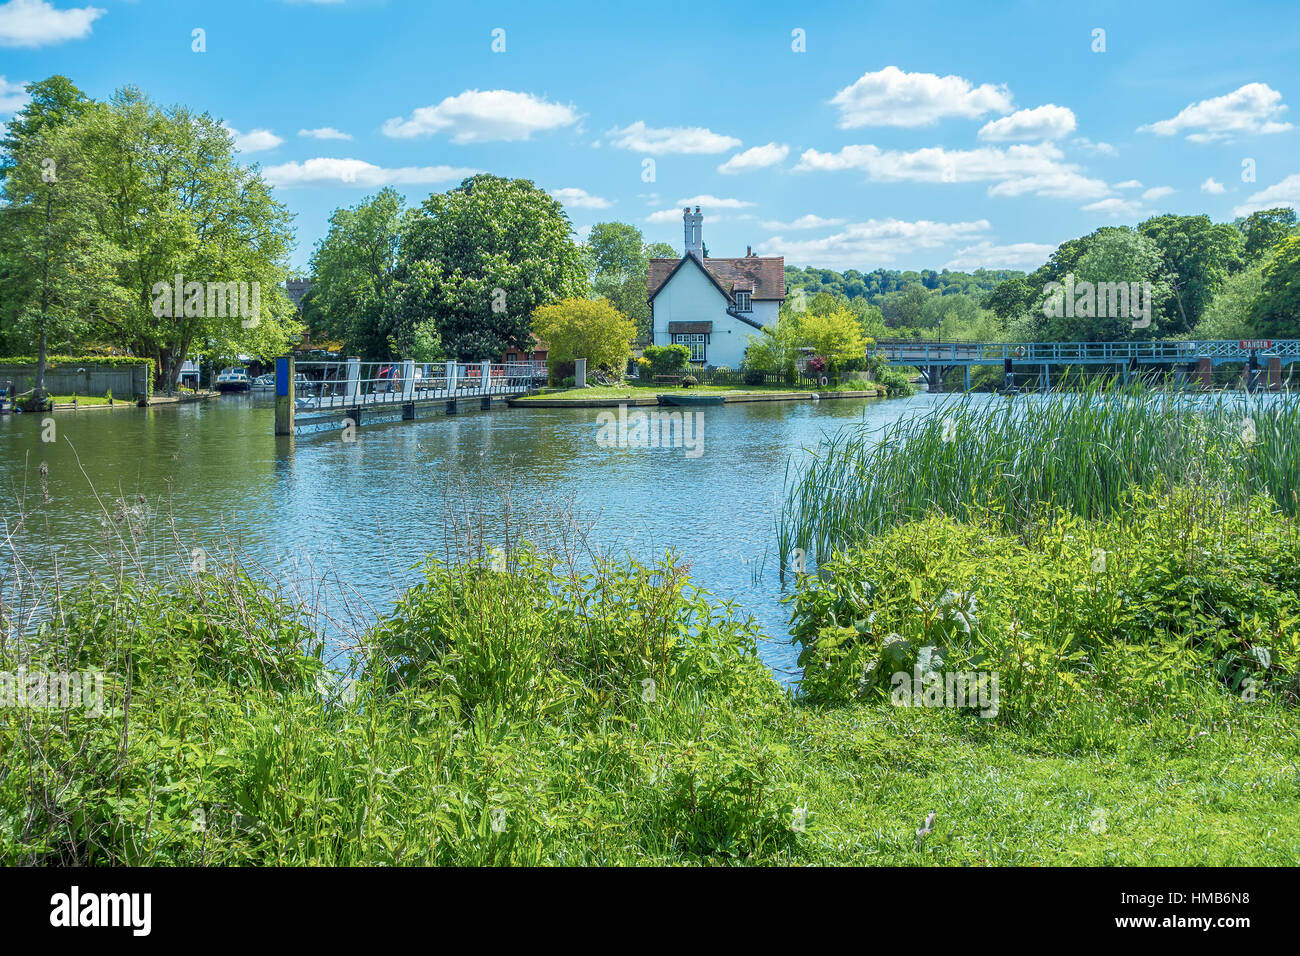 River Thames At Goring On Thames Oxfordshire UK - Stock Image